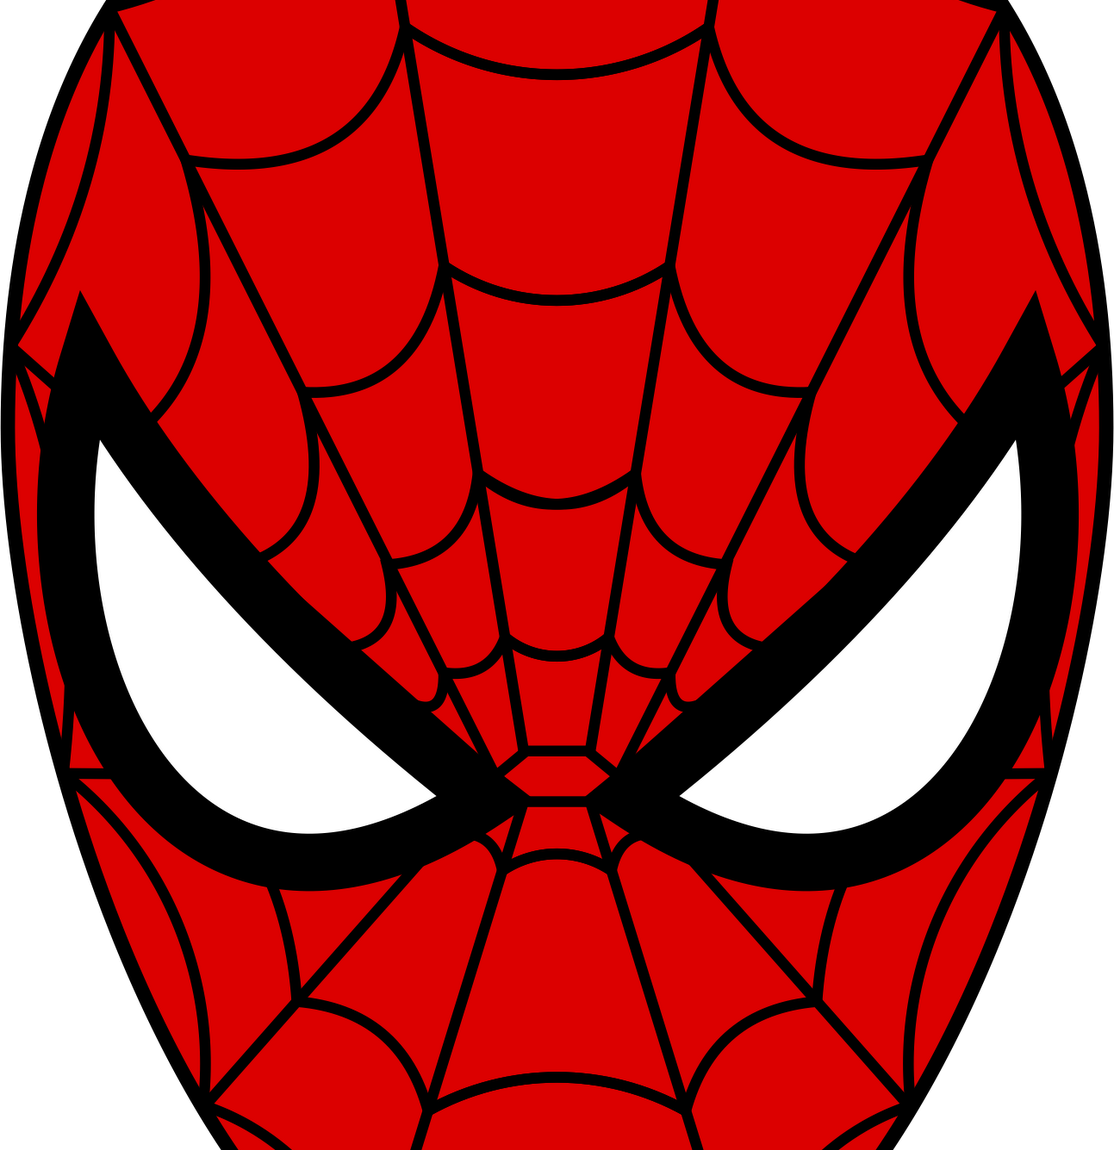 Youtube clipart spiderman. Spider man face pencil